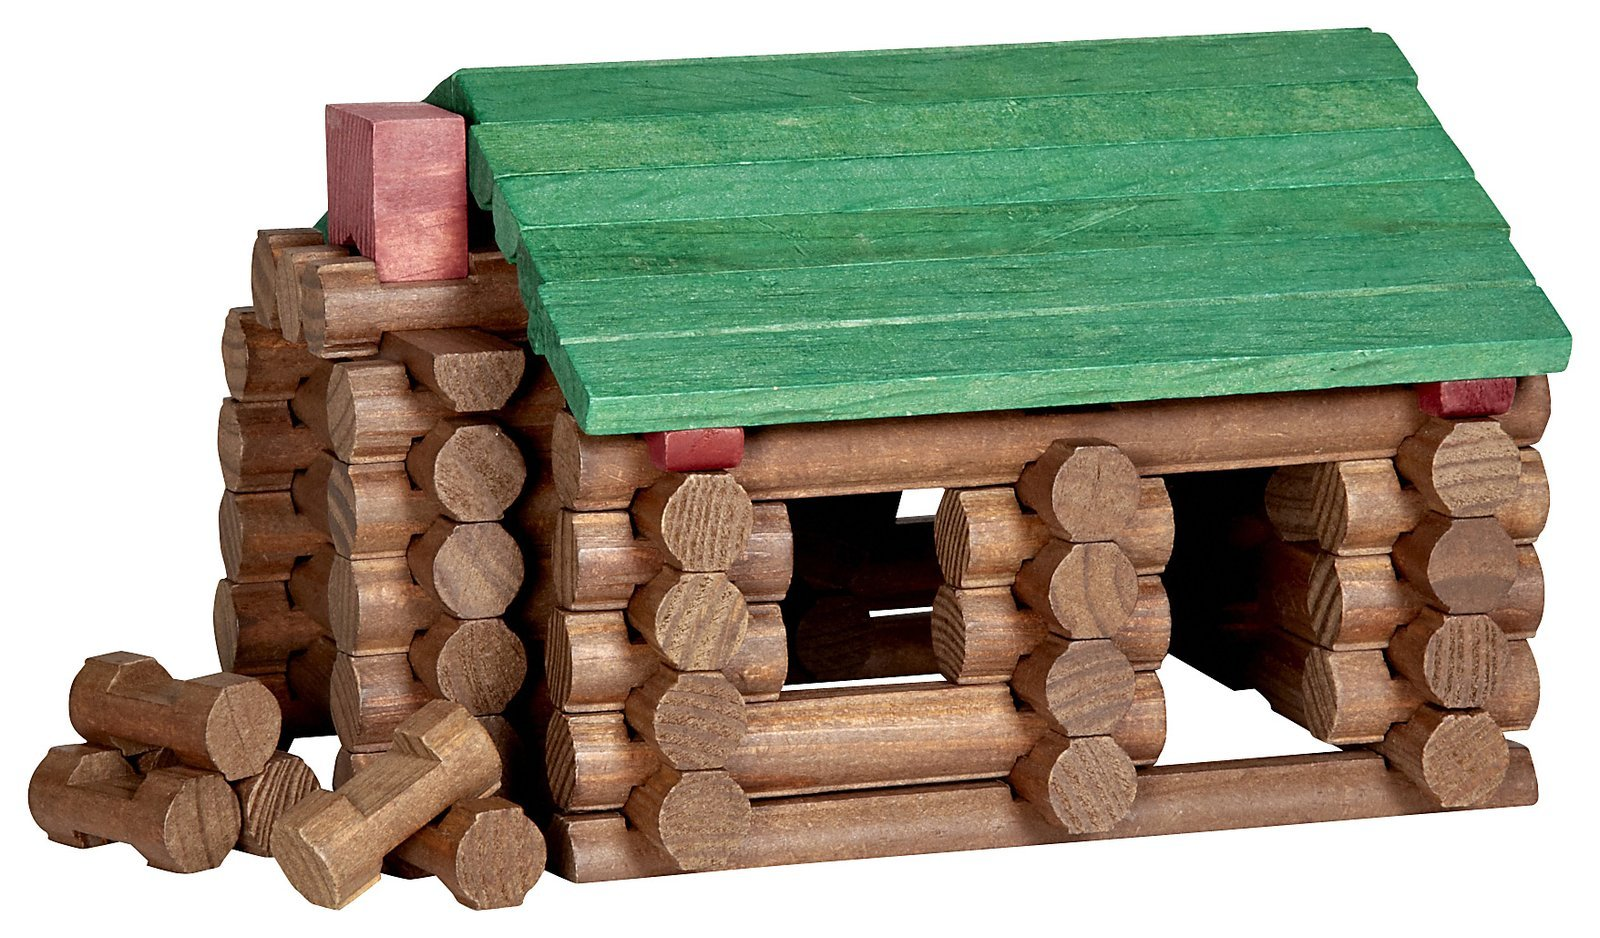 Wooden logs toys clipart jpg freeuse library Lincoln logs clipart 7 » Clipart Portal jpg freeuse library